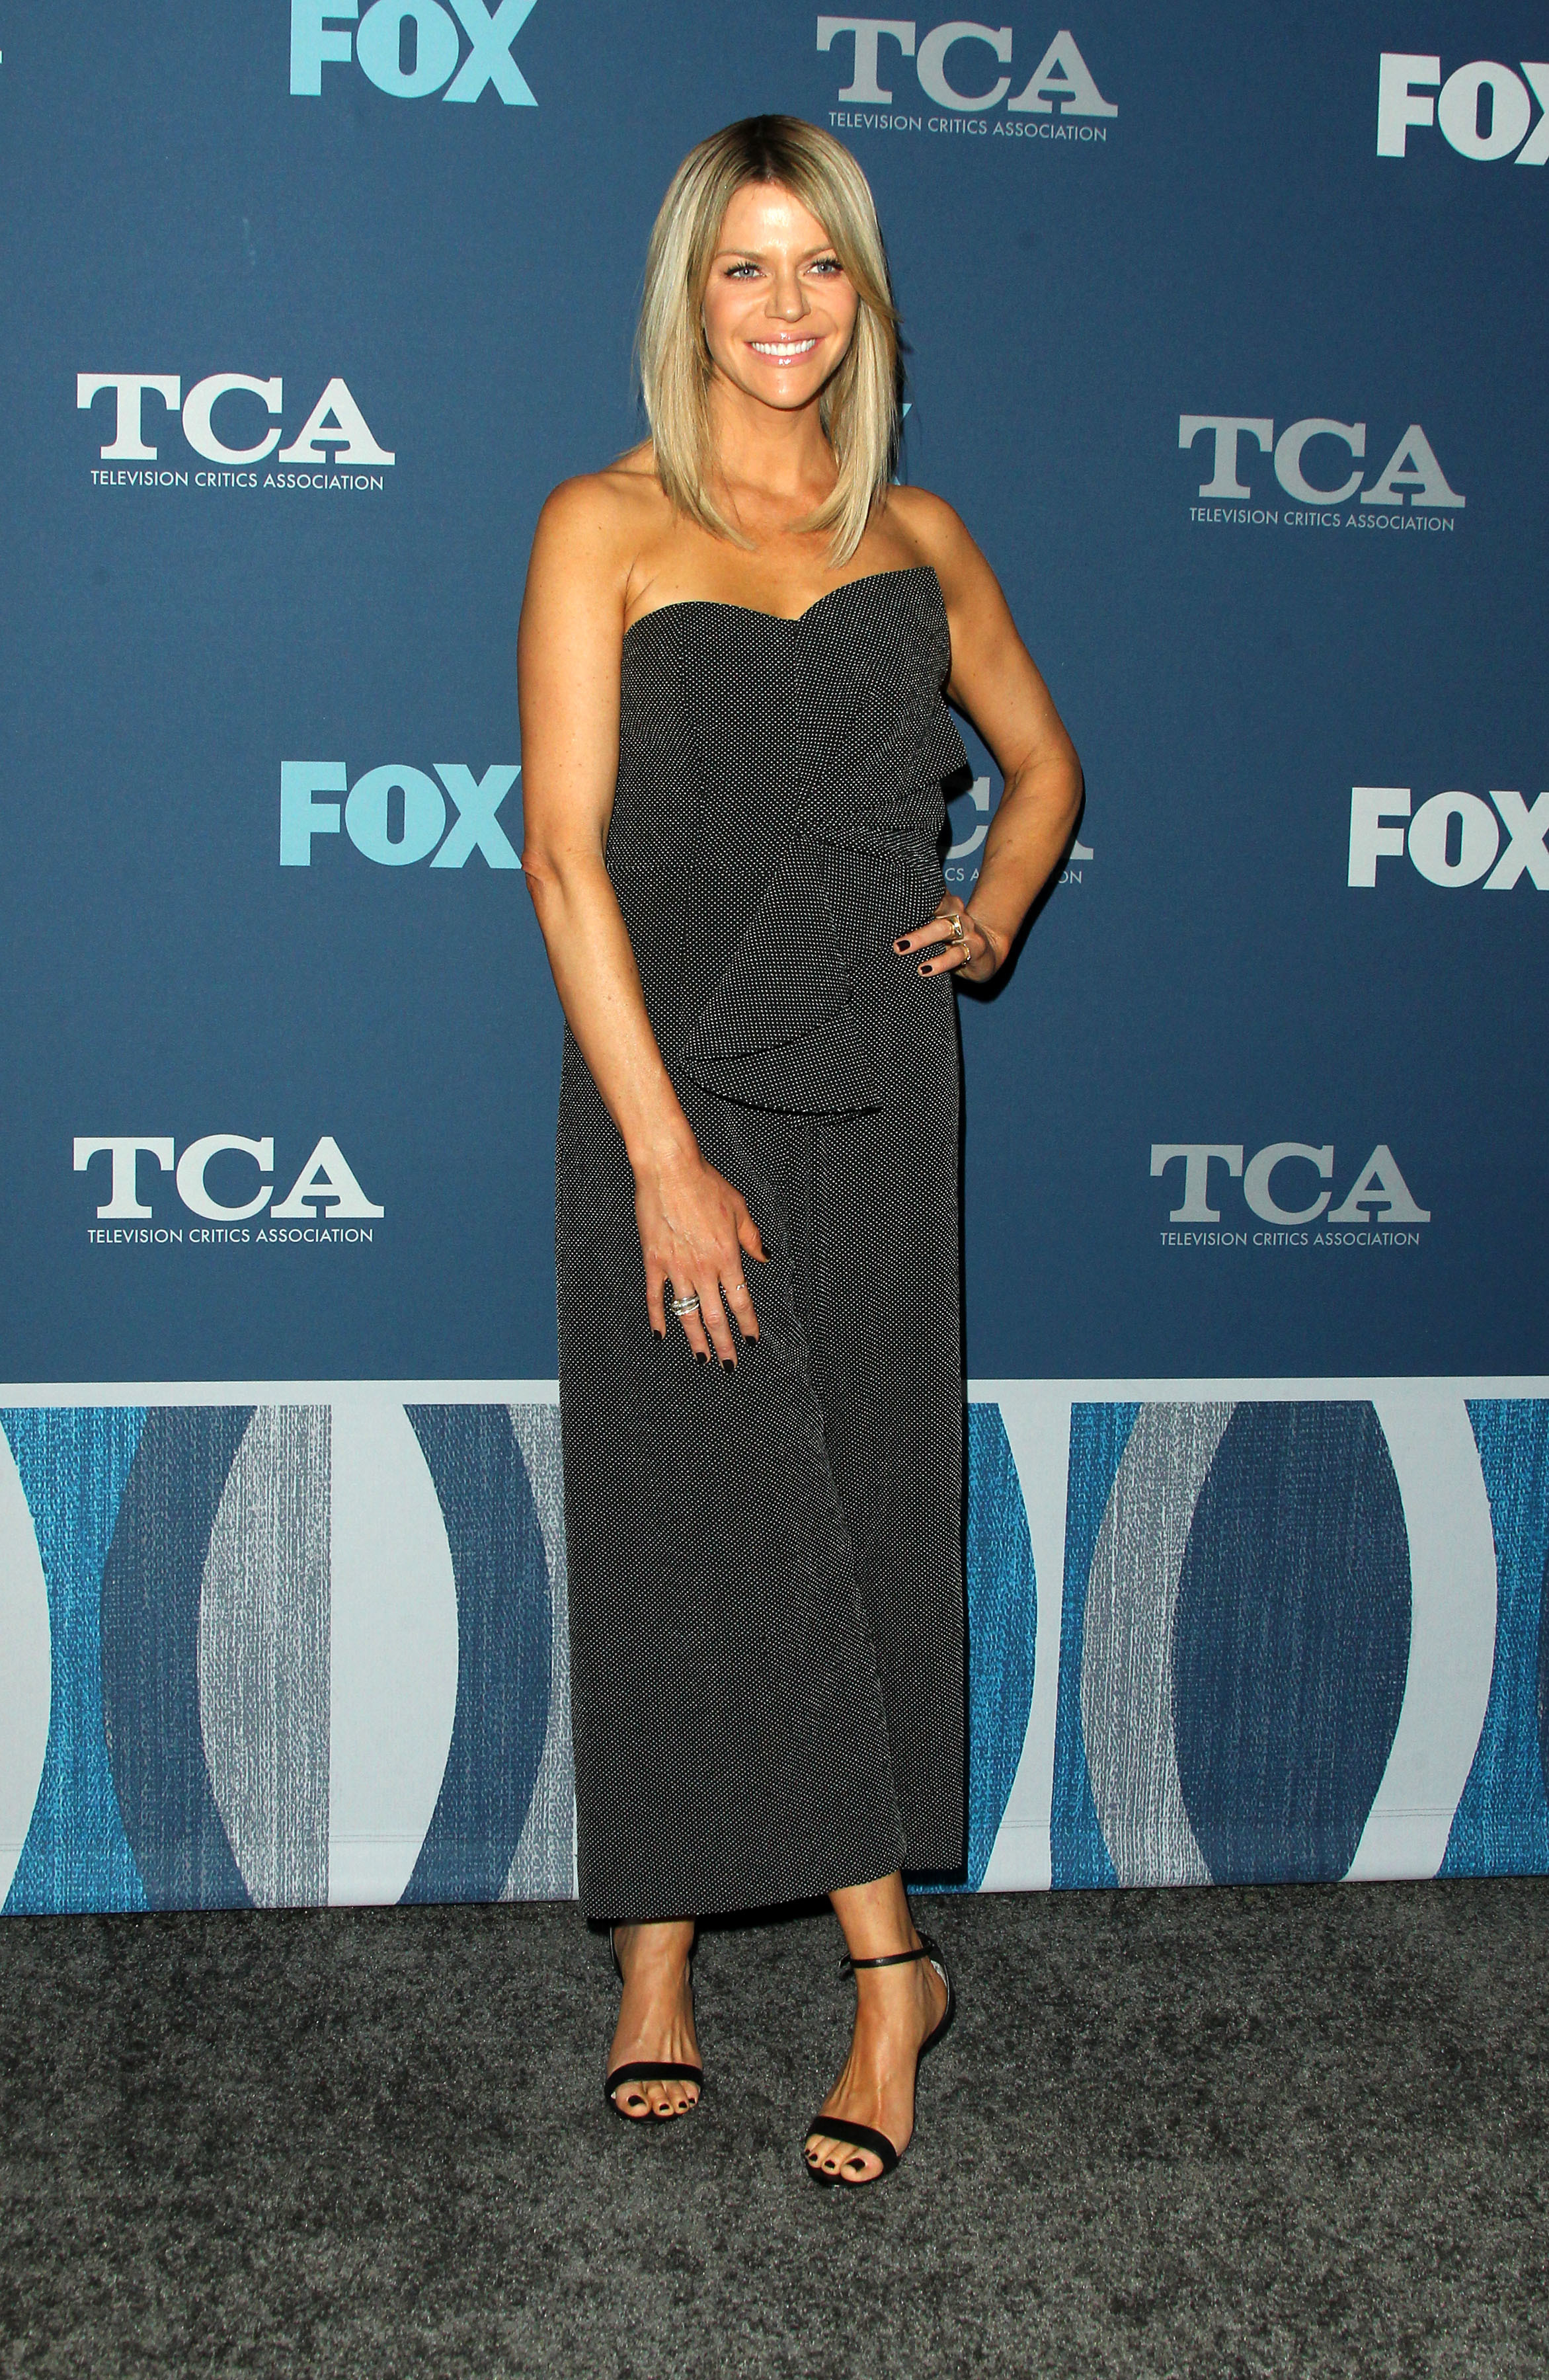 Feet Kaitlin Olson naked (92 foto and video), Topless, Leaked, Instagram, cleavage 2015